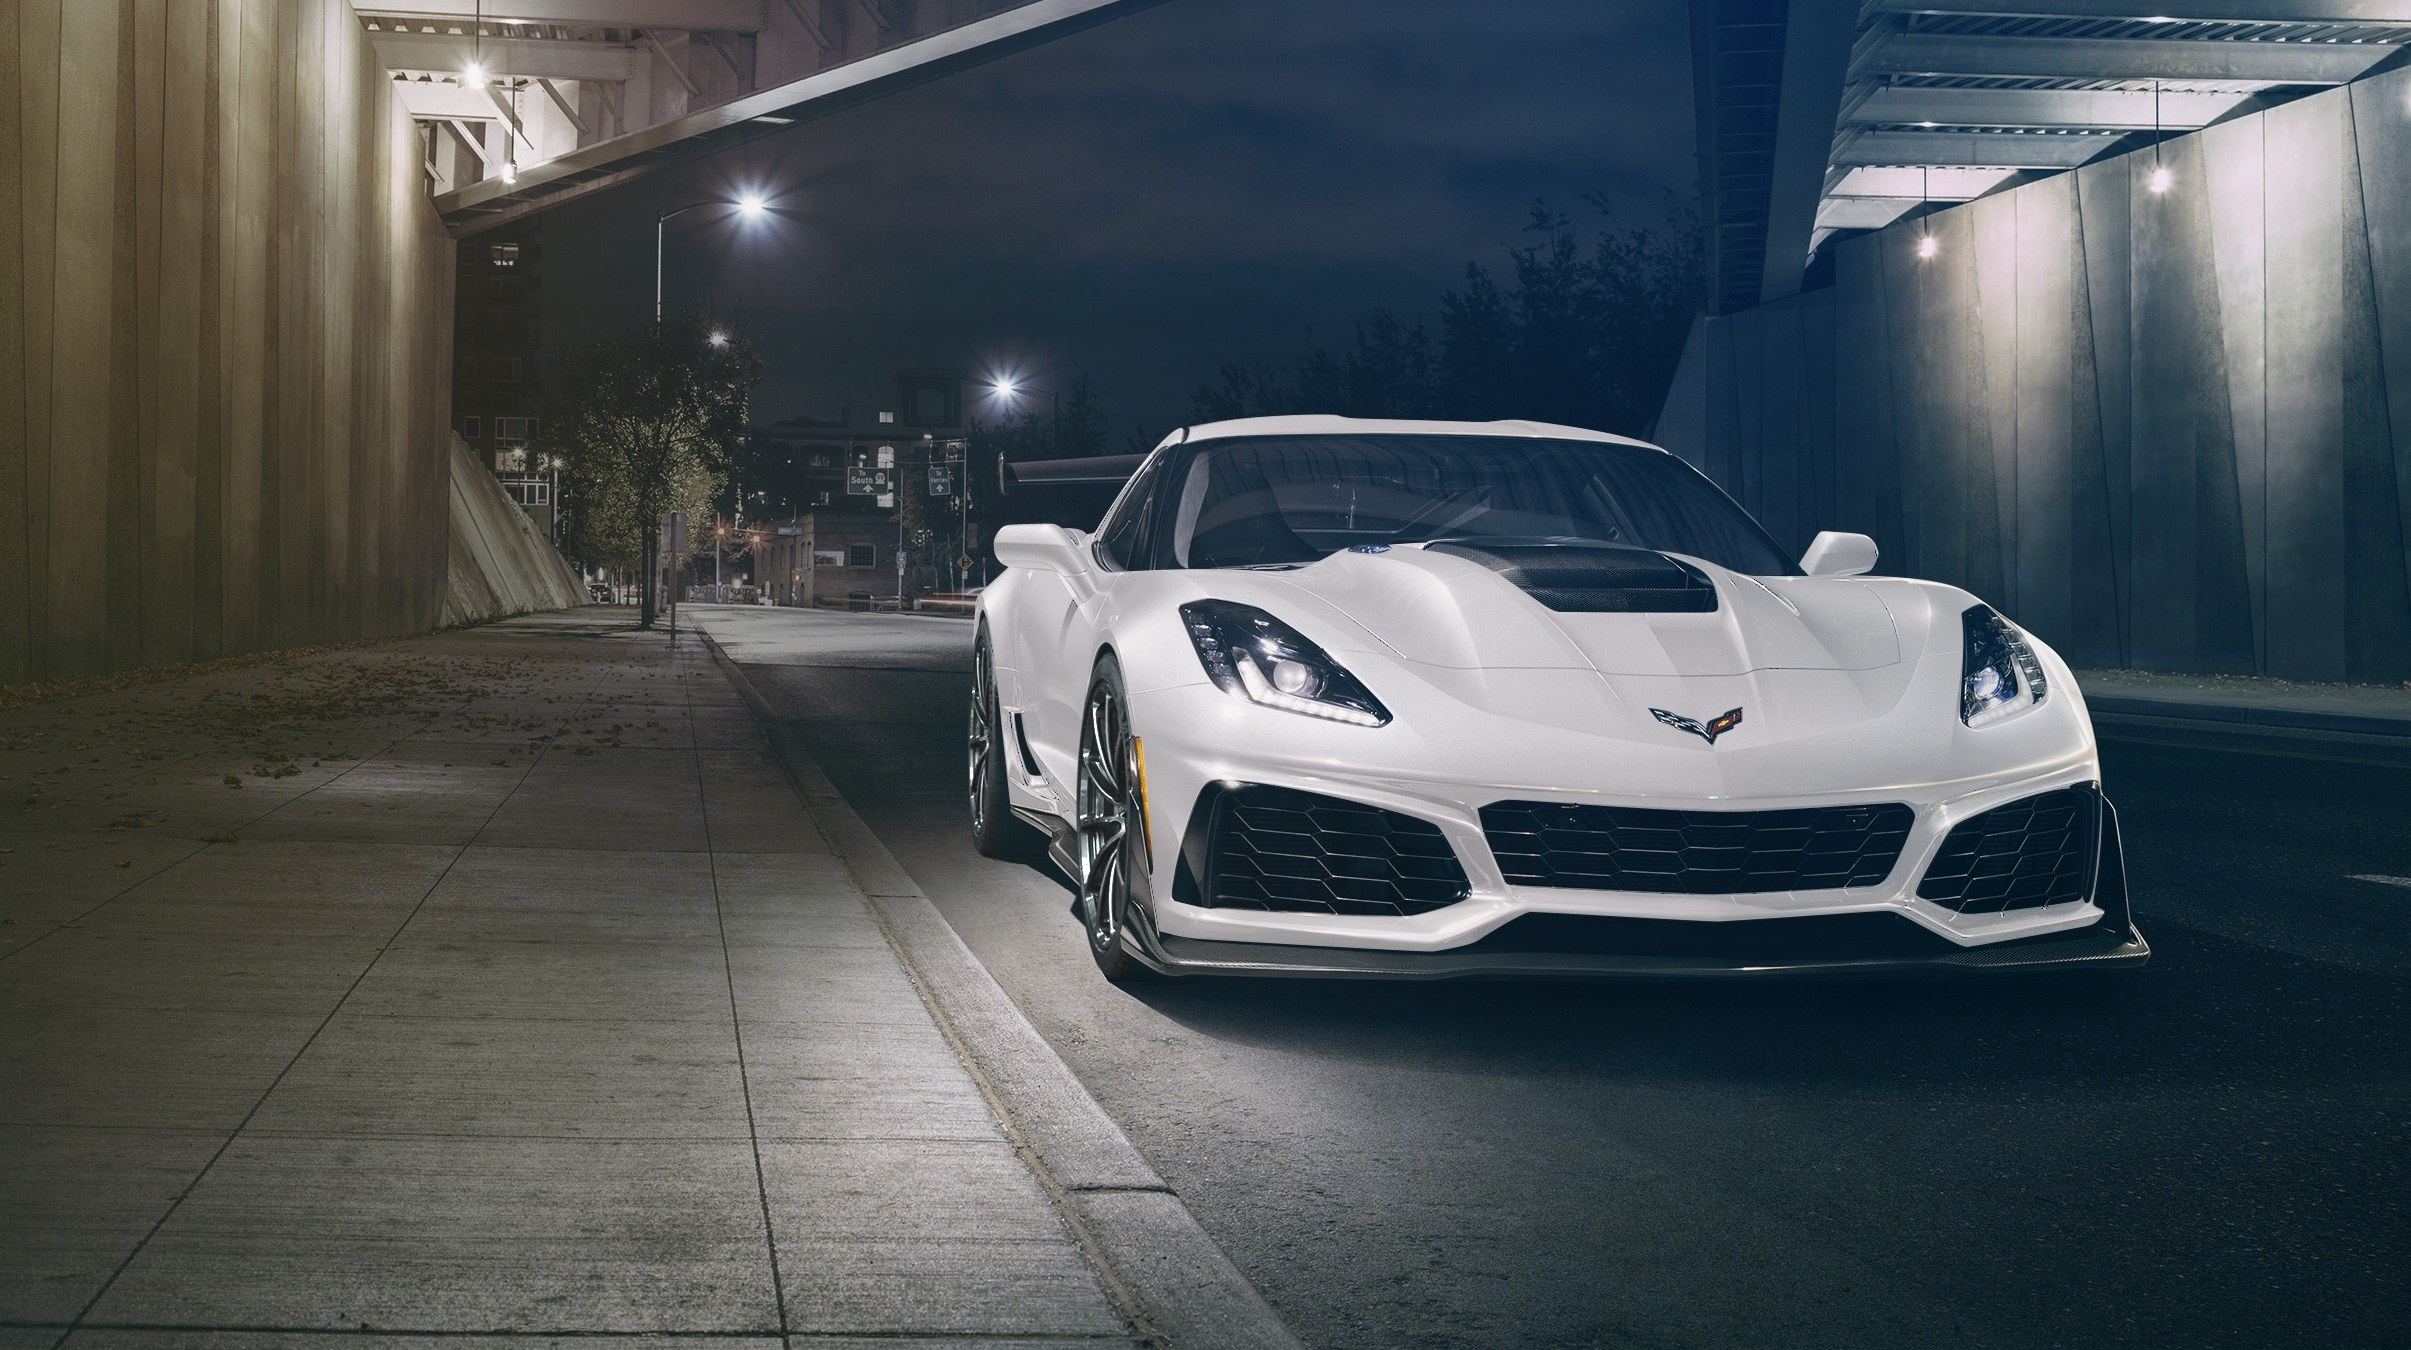 2019 Chevrolet Corvette ZR1 By Hennessey Pictures, Photos, Wallpapers. What do you think?